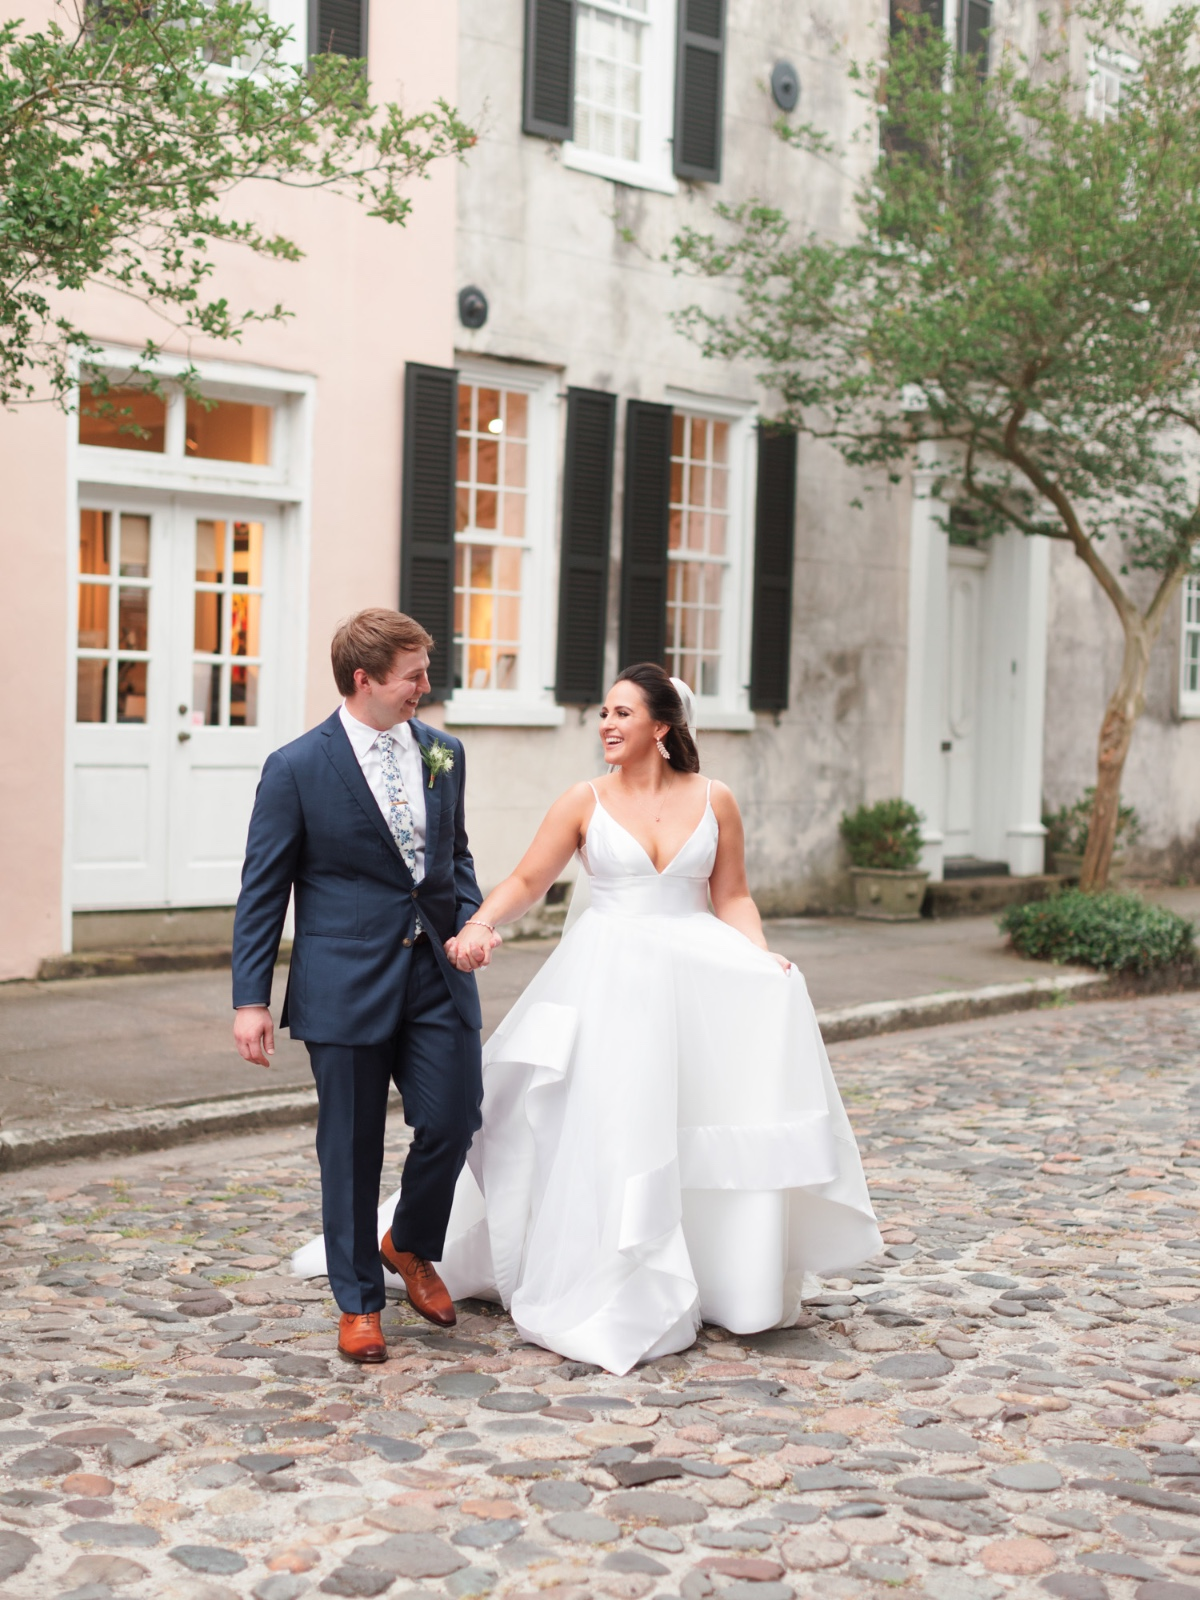 charlestonweddingcharlestonscweddingcharlestonweddingvideographer